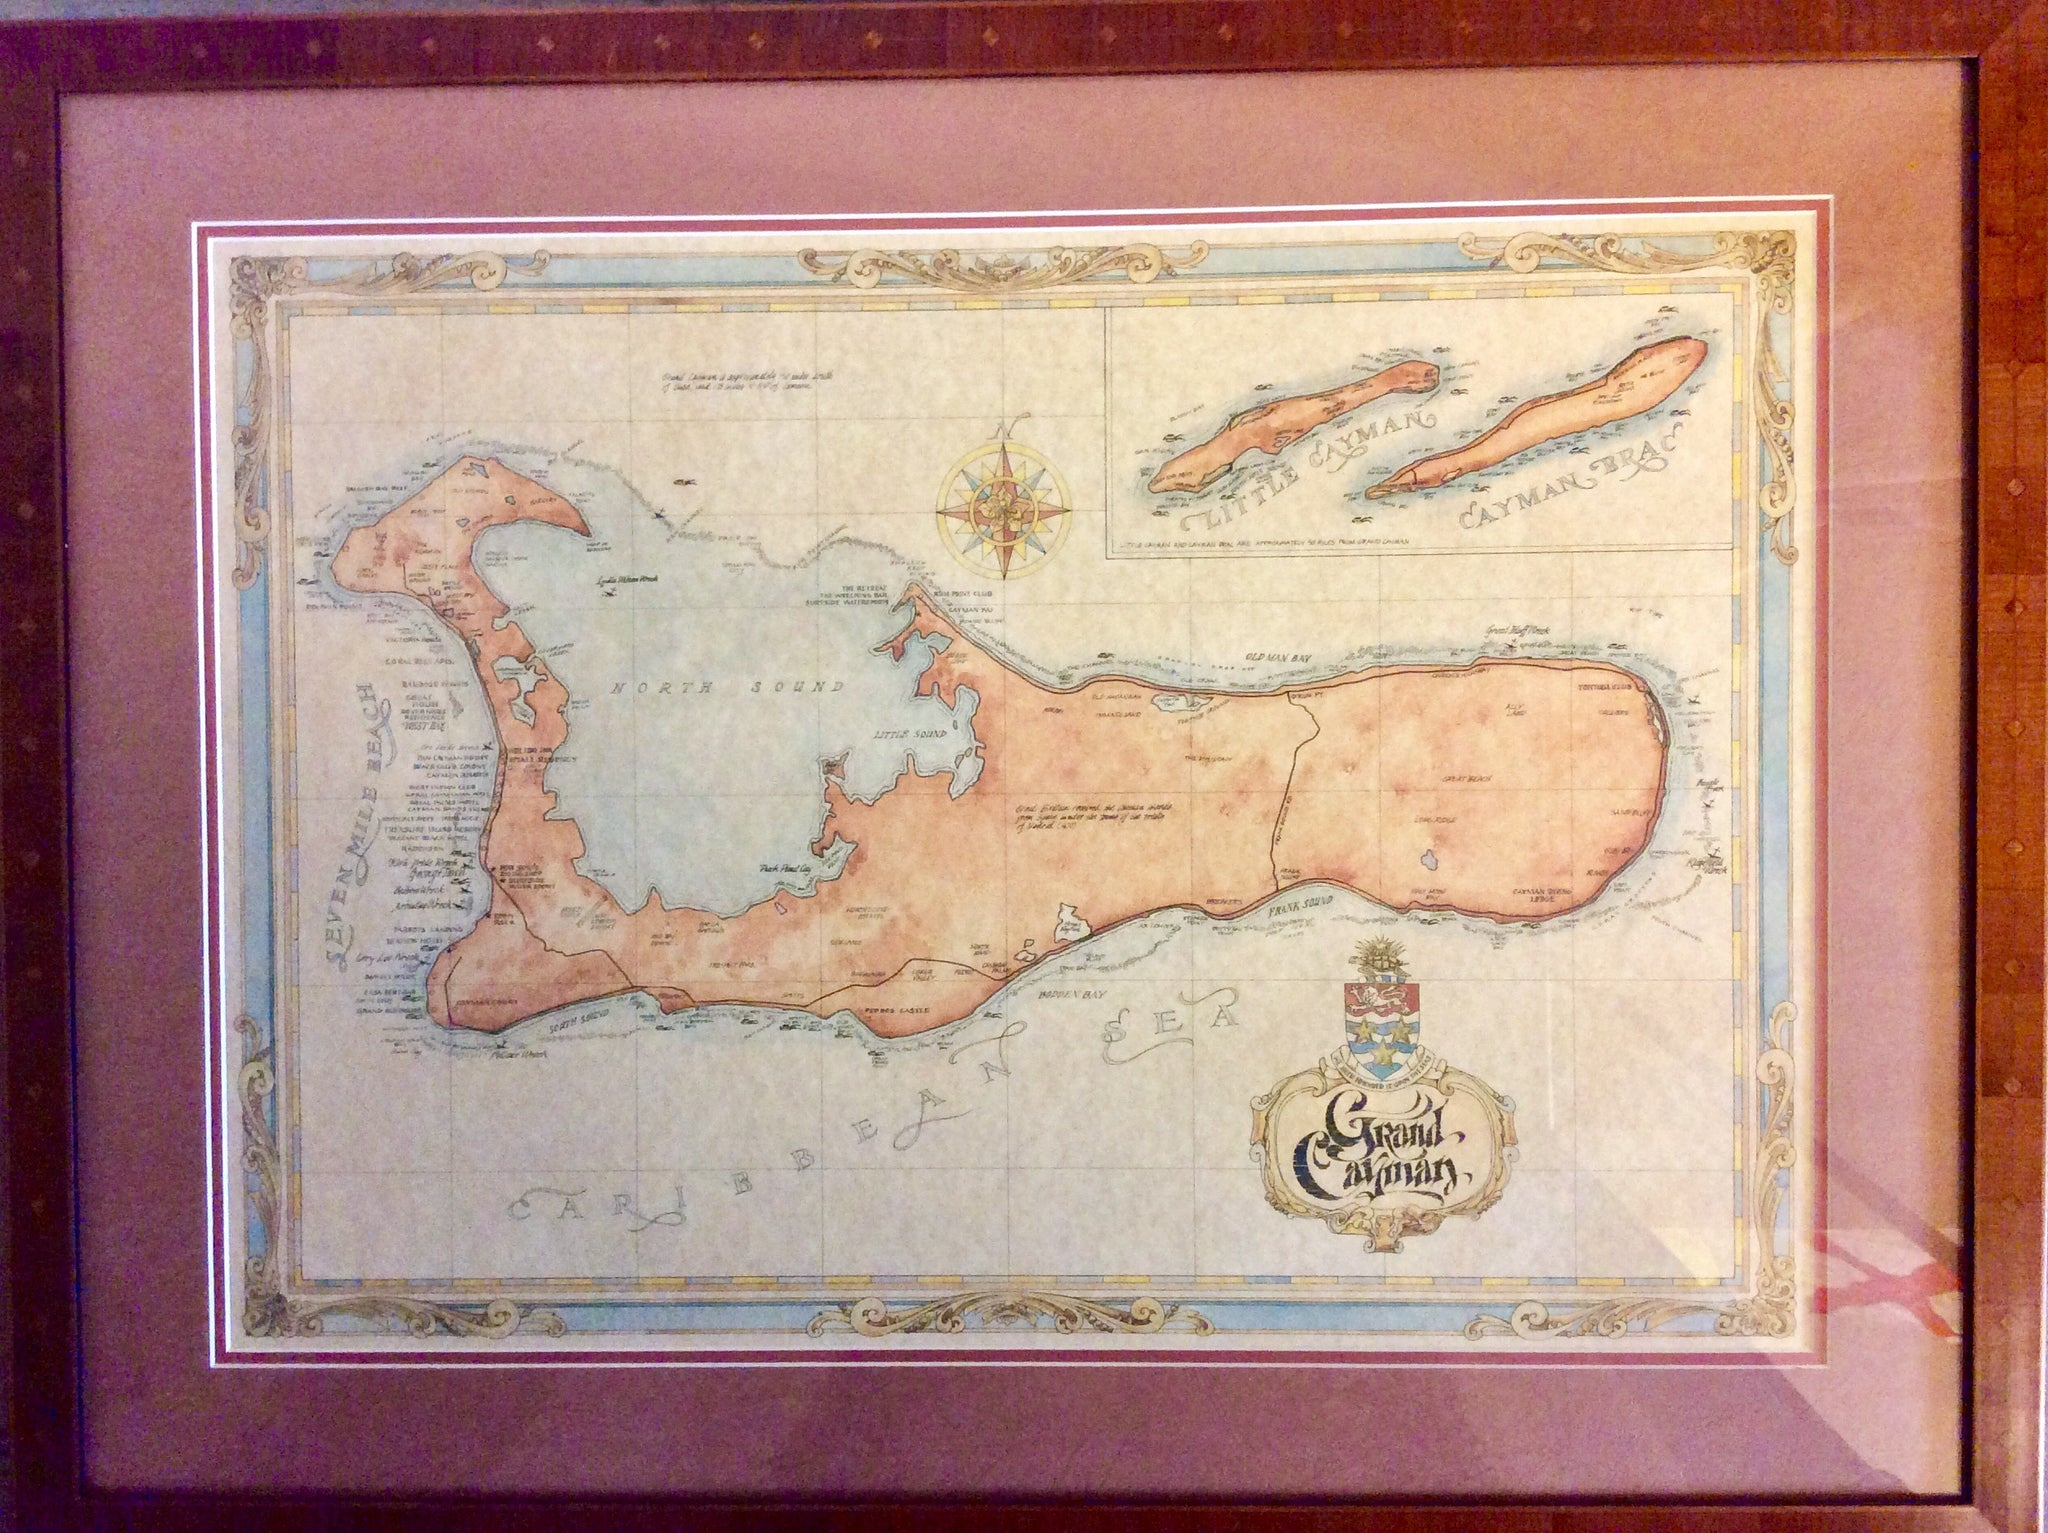 Art, Chart, Grand Cayman, Circa Late 1800's, framed - Annapolis Maritime Antiques